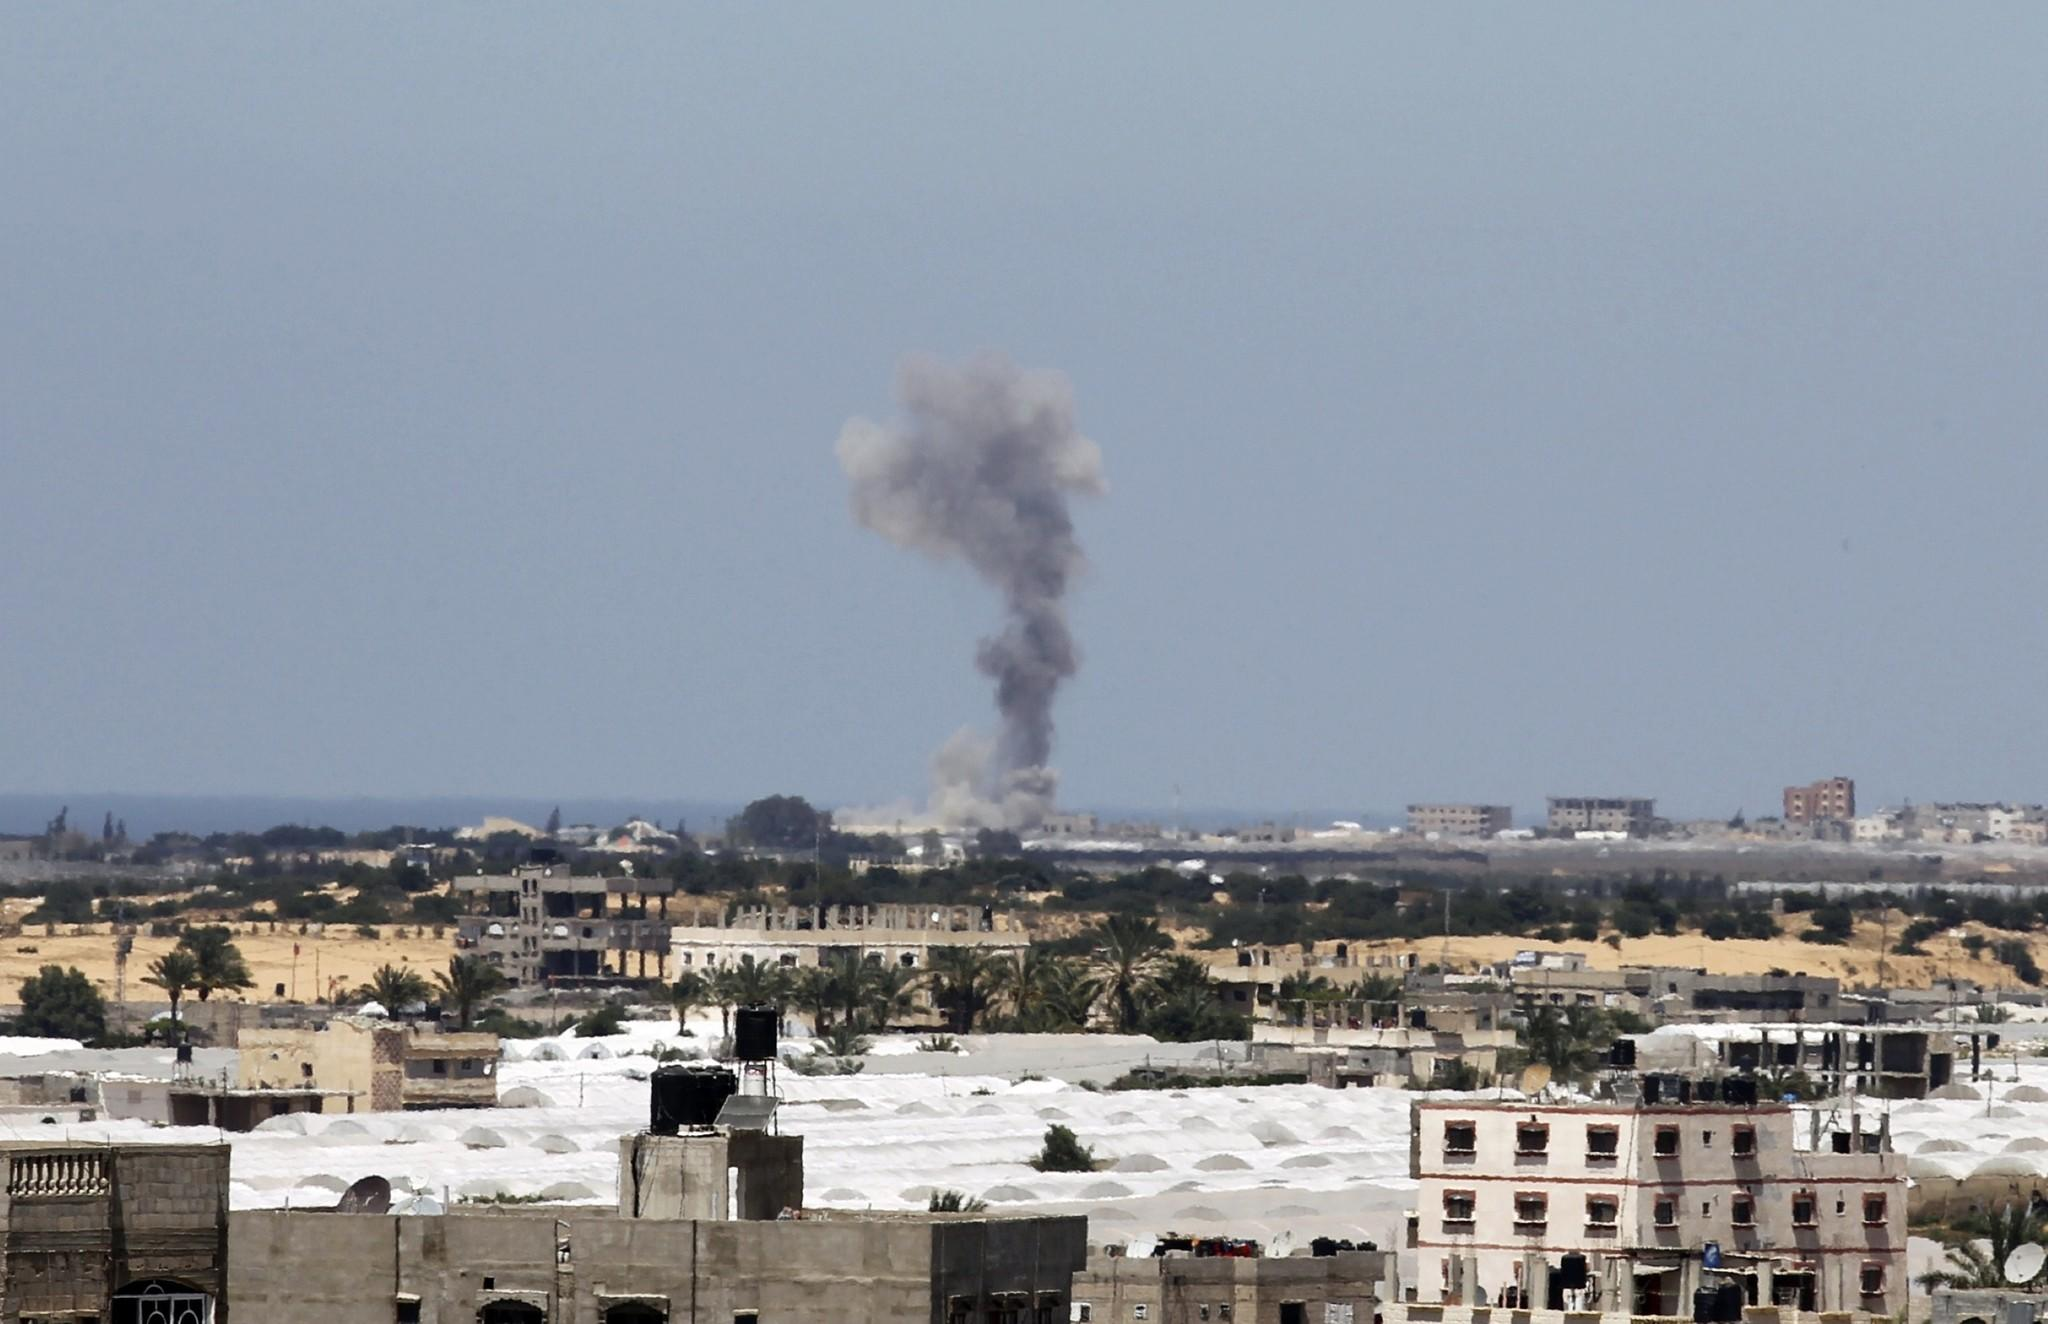 Smoke rises following an Israeli strike Monday on Rafah in the southern Gaza Strip, hours after Palestinian militants in the coastal enclave fired seven rockets into Israel, causing no casualties.